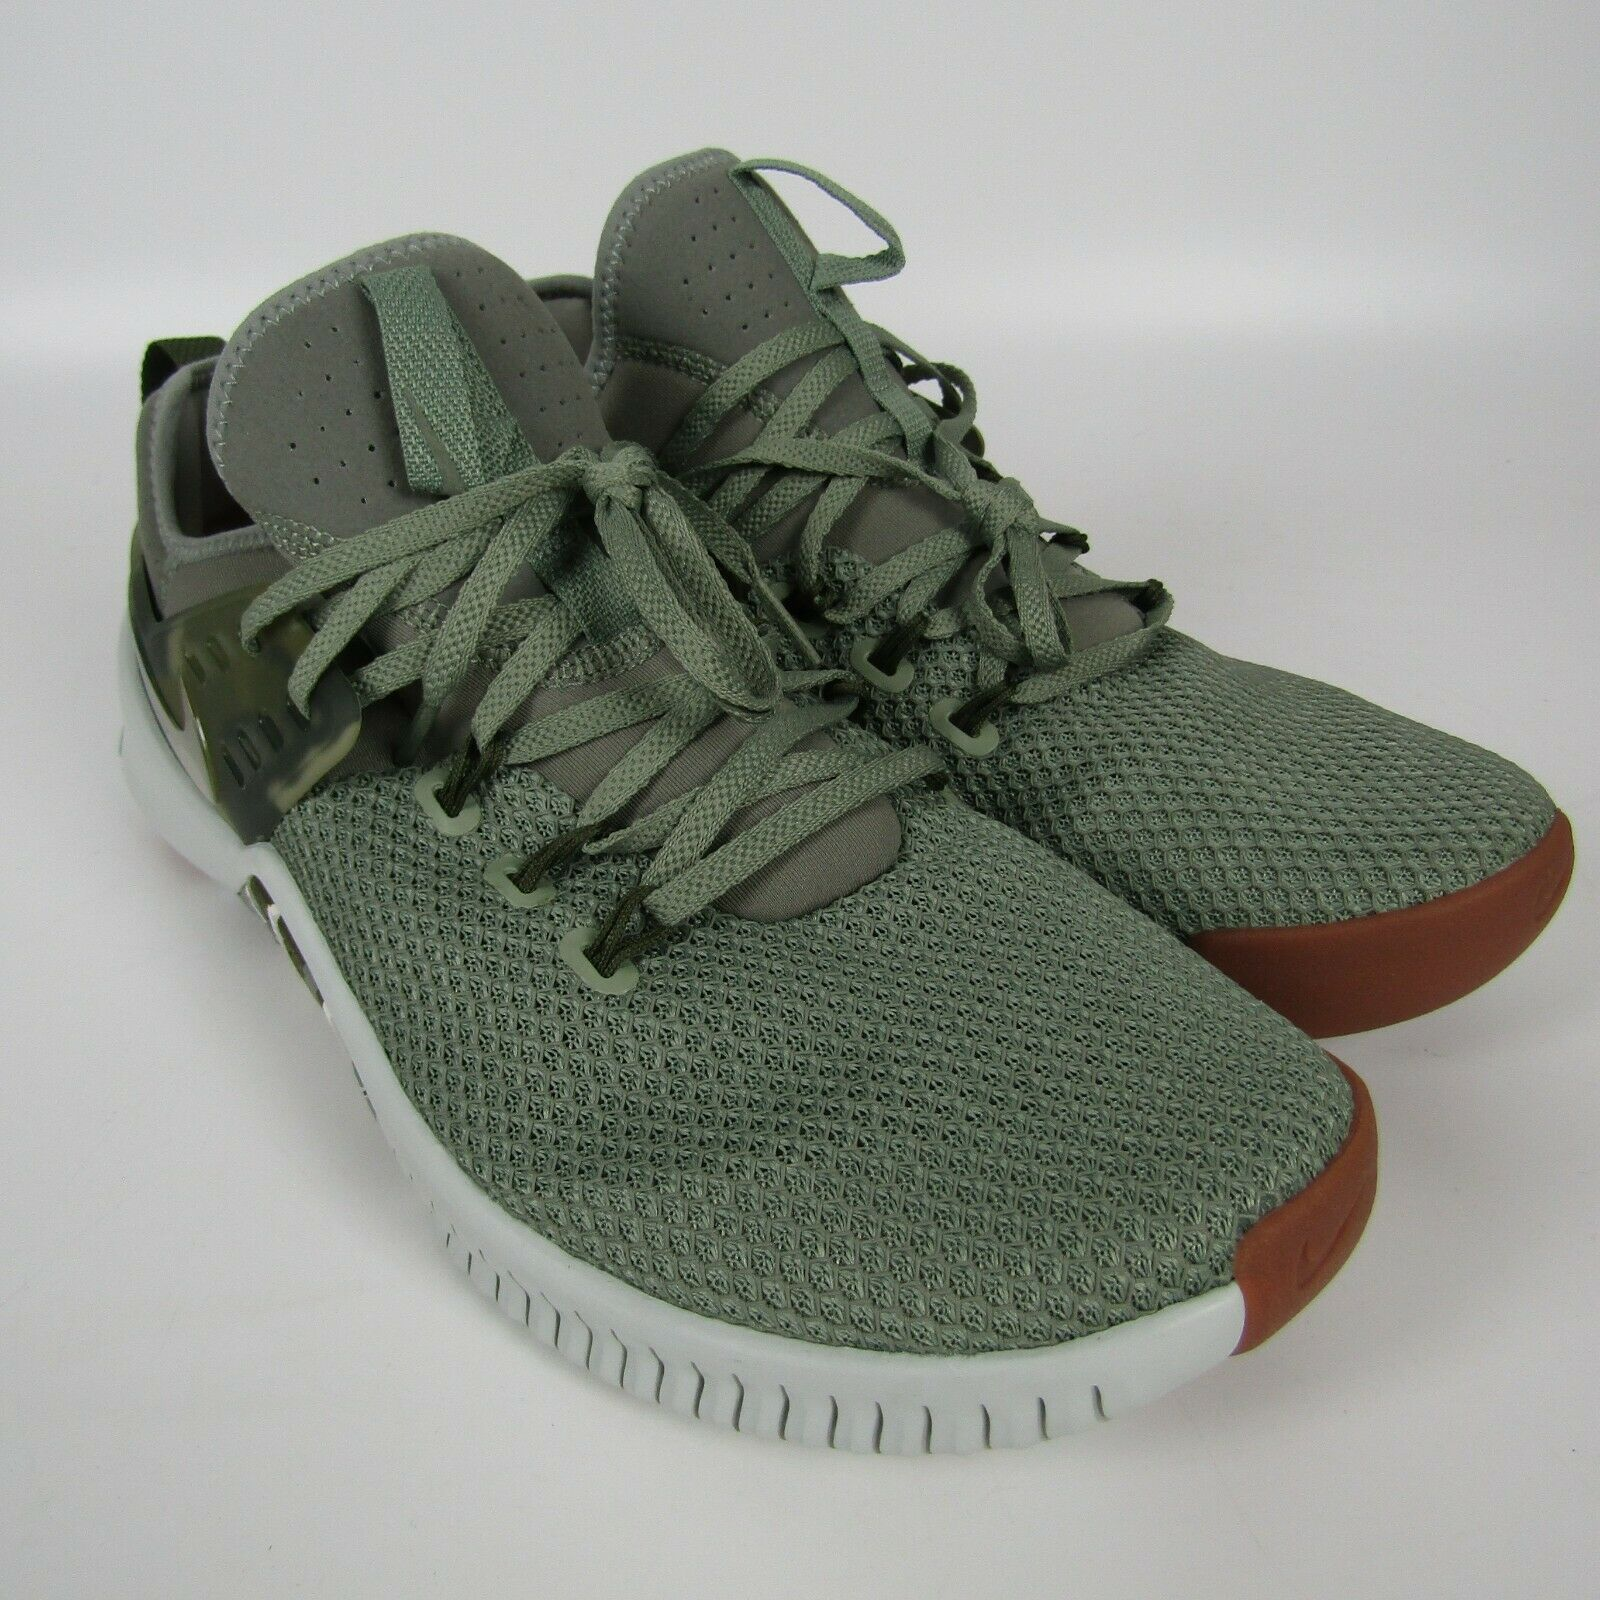 Mens Nike Free Metcon Running Shoes Size 11.5 Green Tan Camo AH8141 002 Trainer image 2